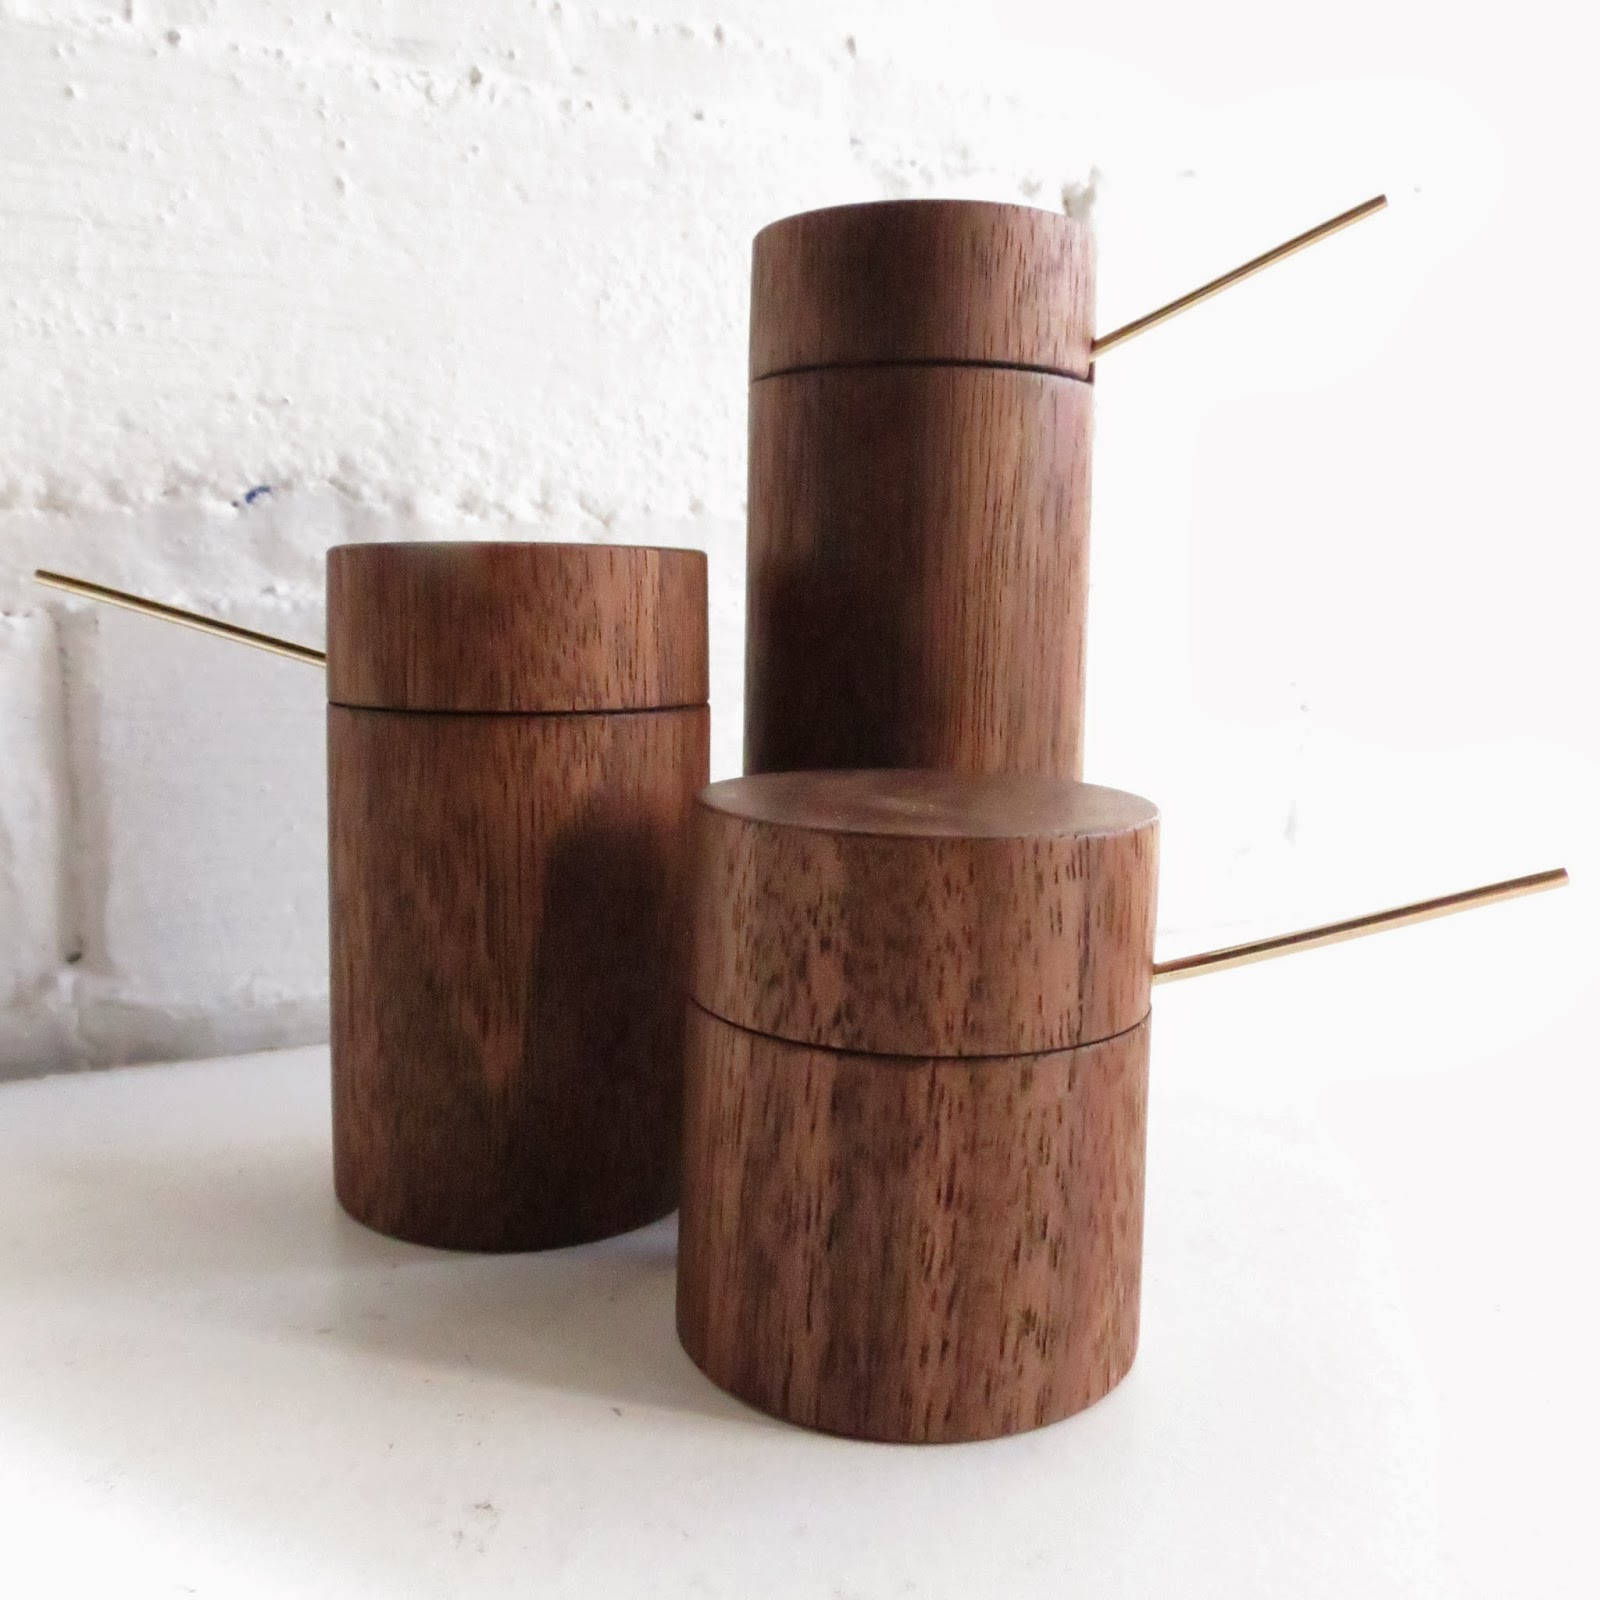 Walnut Salt Cellars